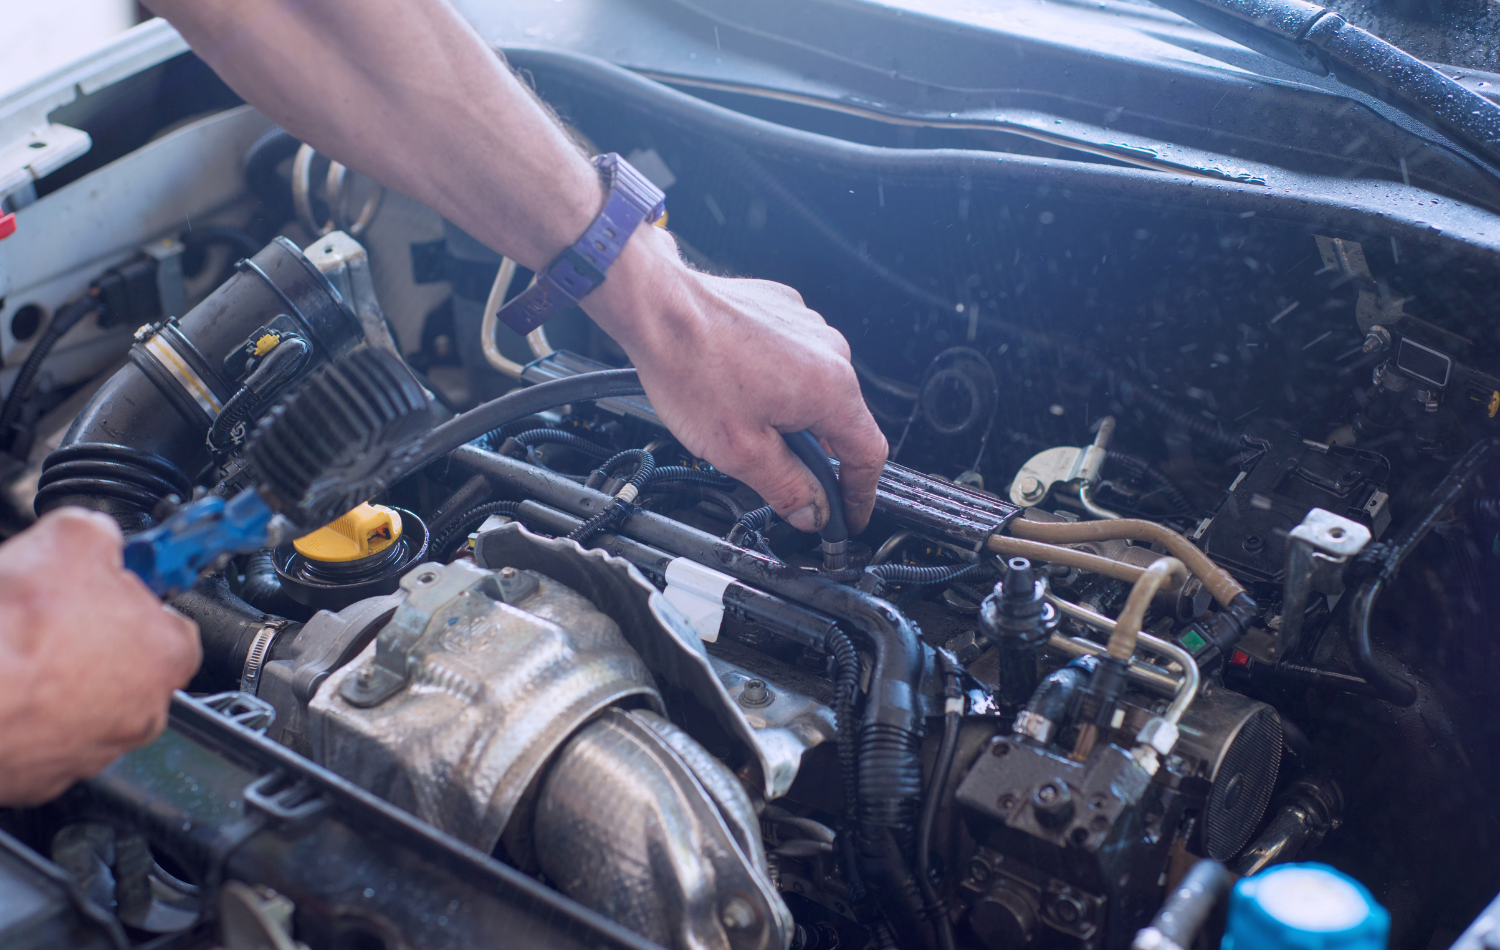 7 Signs Your Vehicle Needs an Engine Performance Check